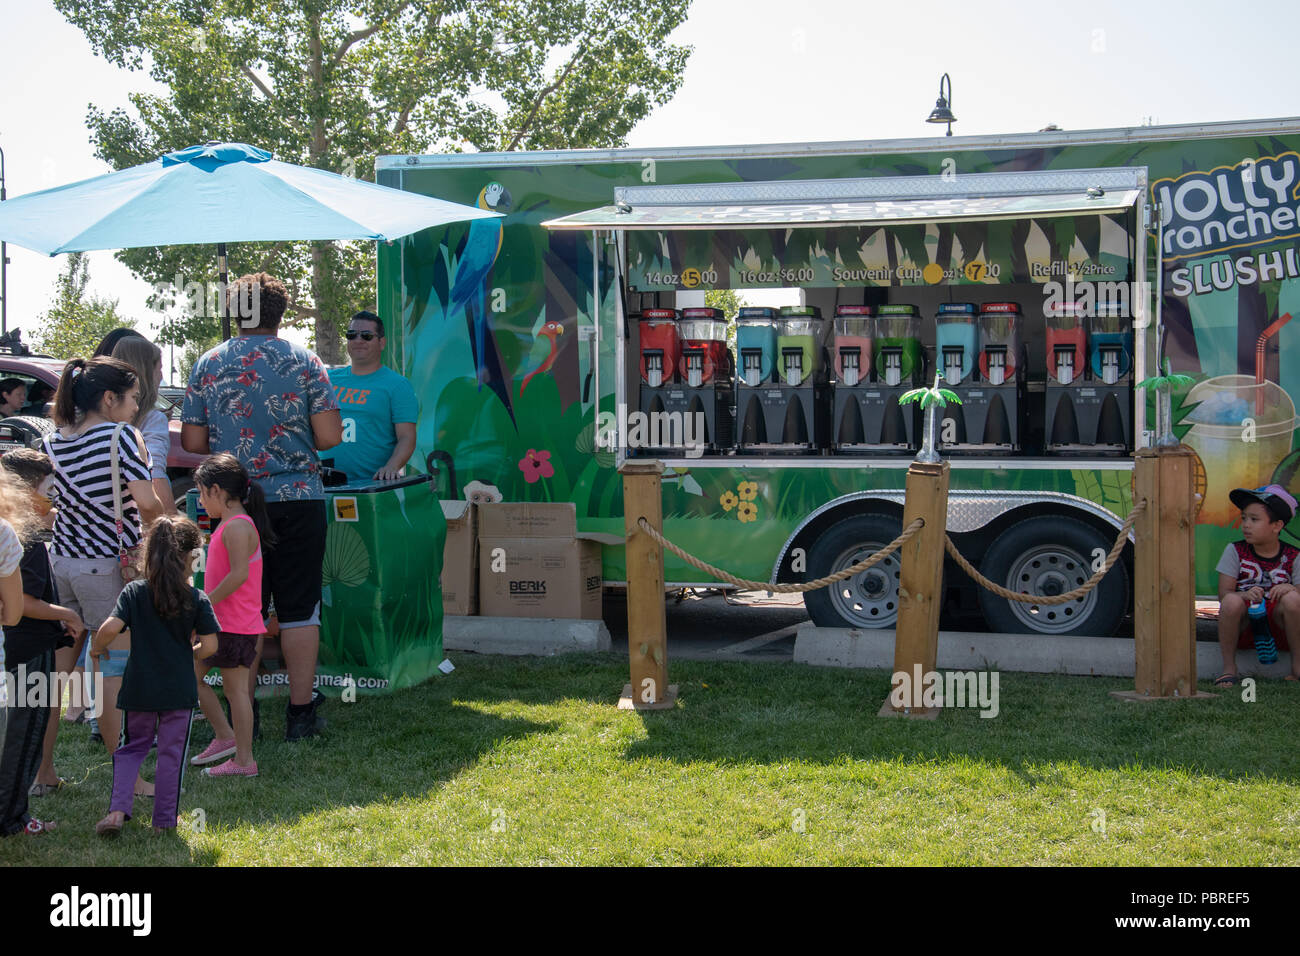 Jolly Rancher Slush at the Chestermere Water Festival, Chestermere, Alberta, Canada - Stock Image